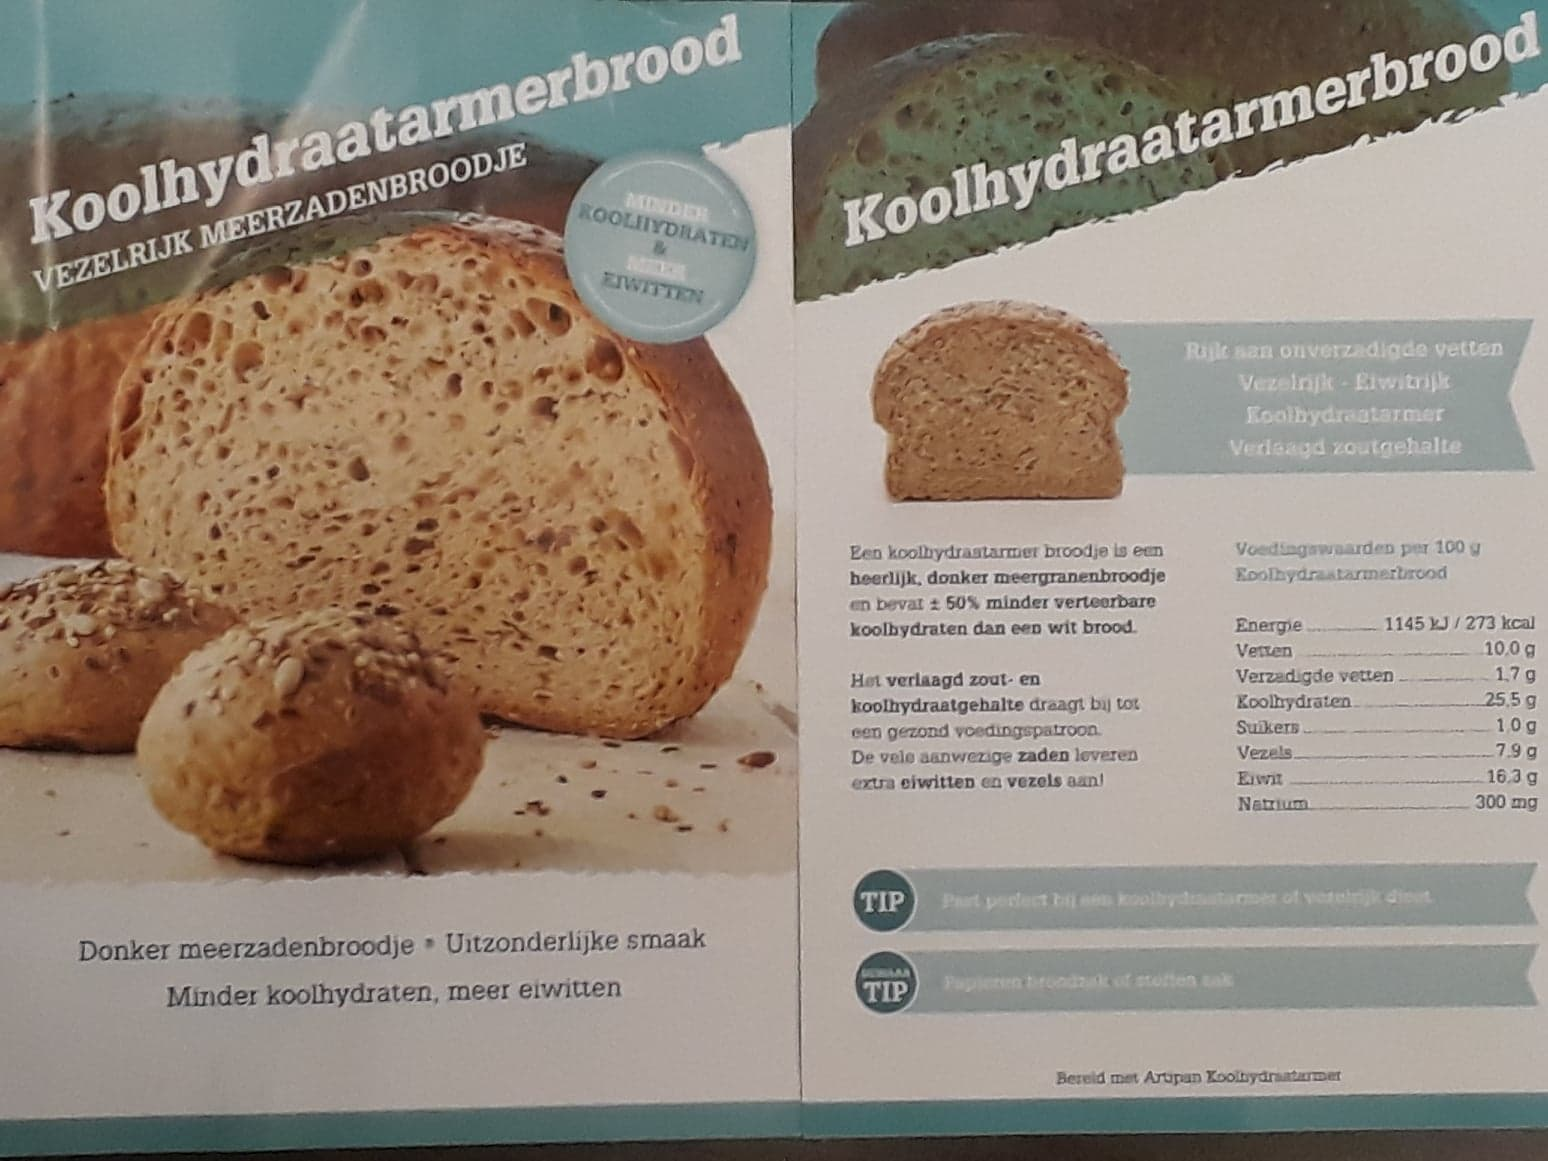 Koolhydraatarmer brood